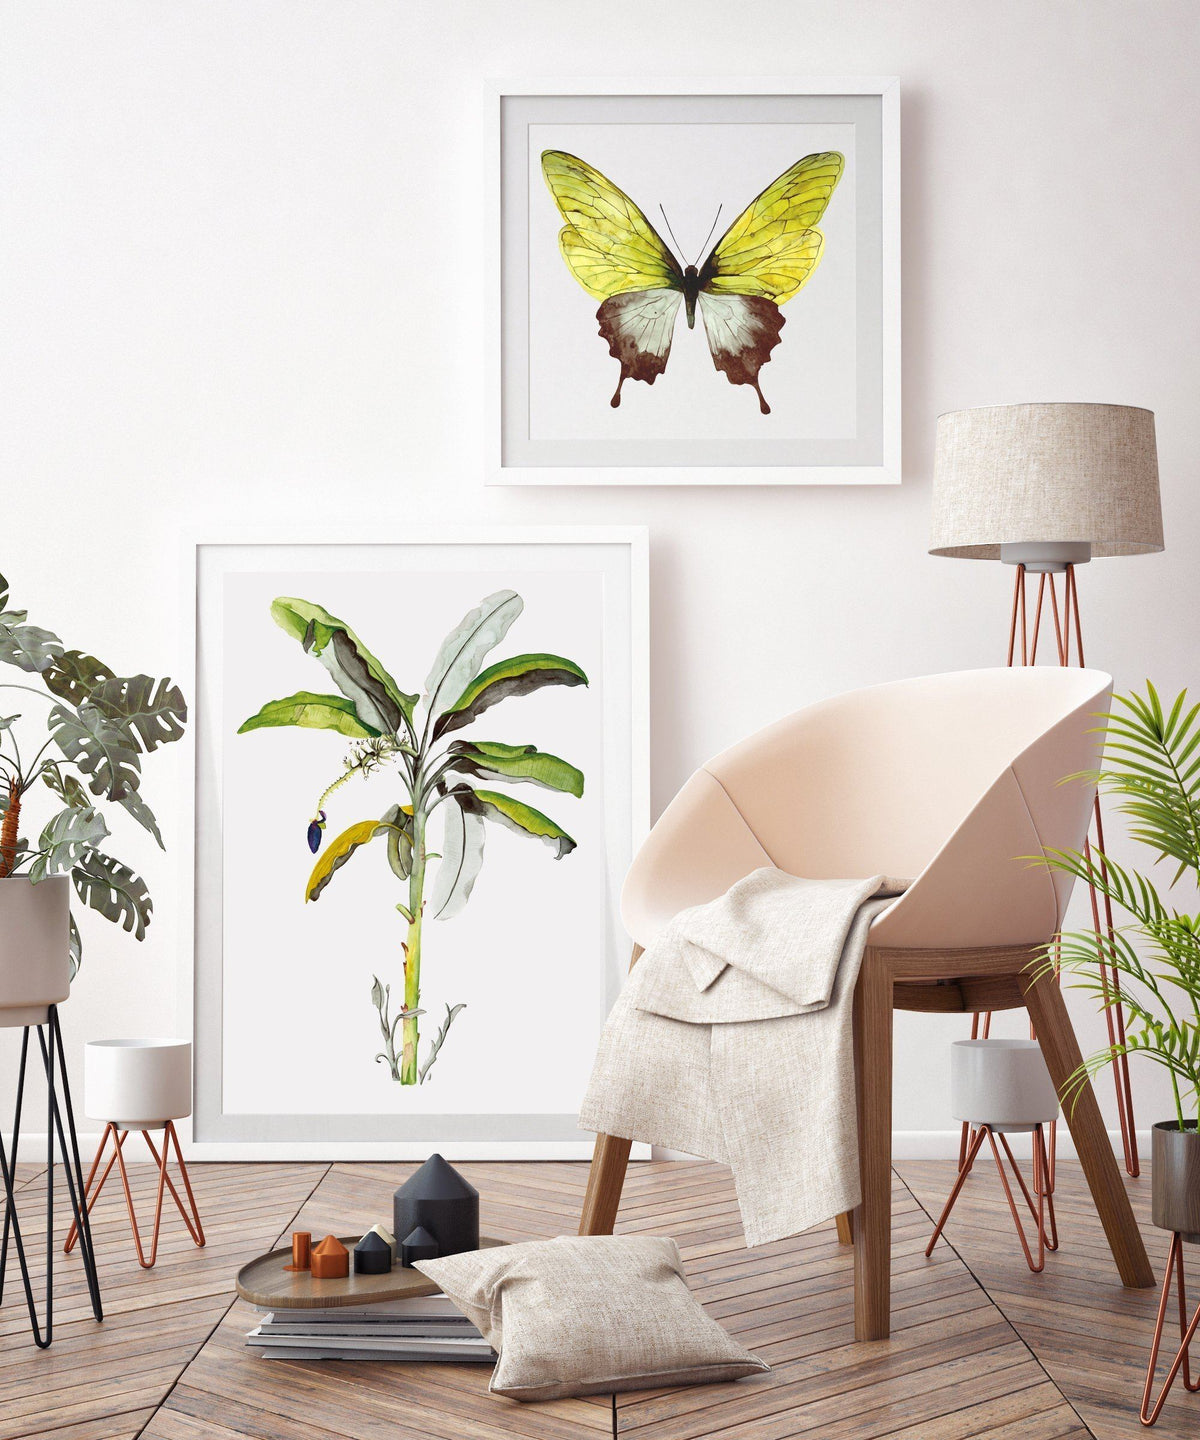 Kunstdruck - GREEN BUTTERFLY Kunstdruck Leo la Douce